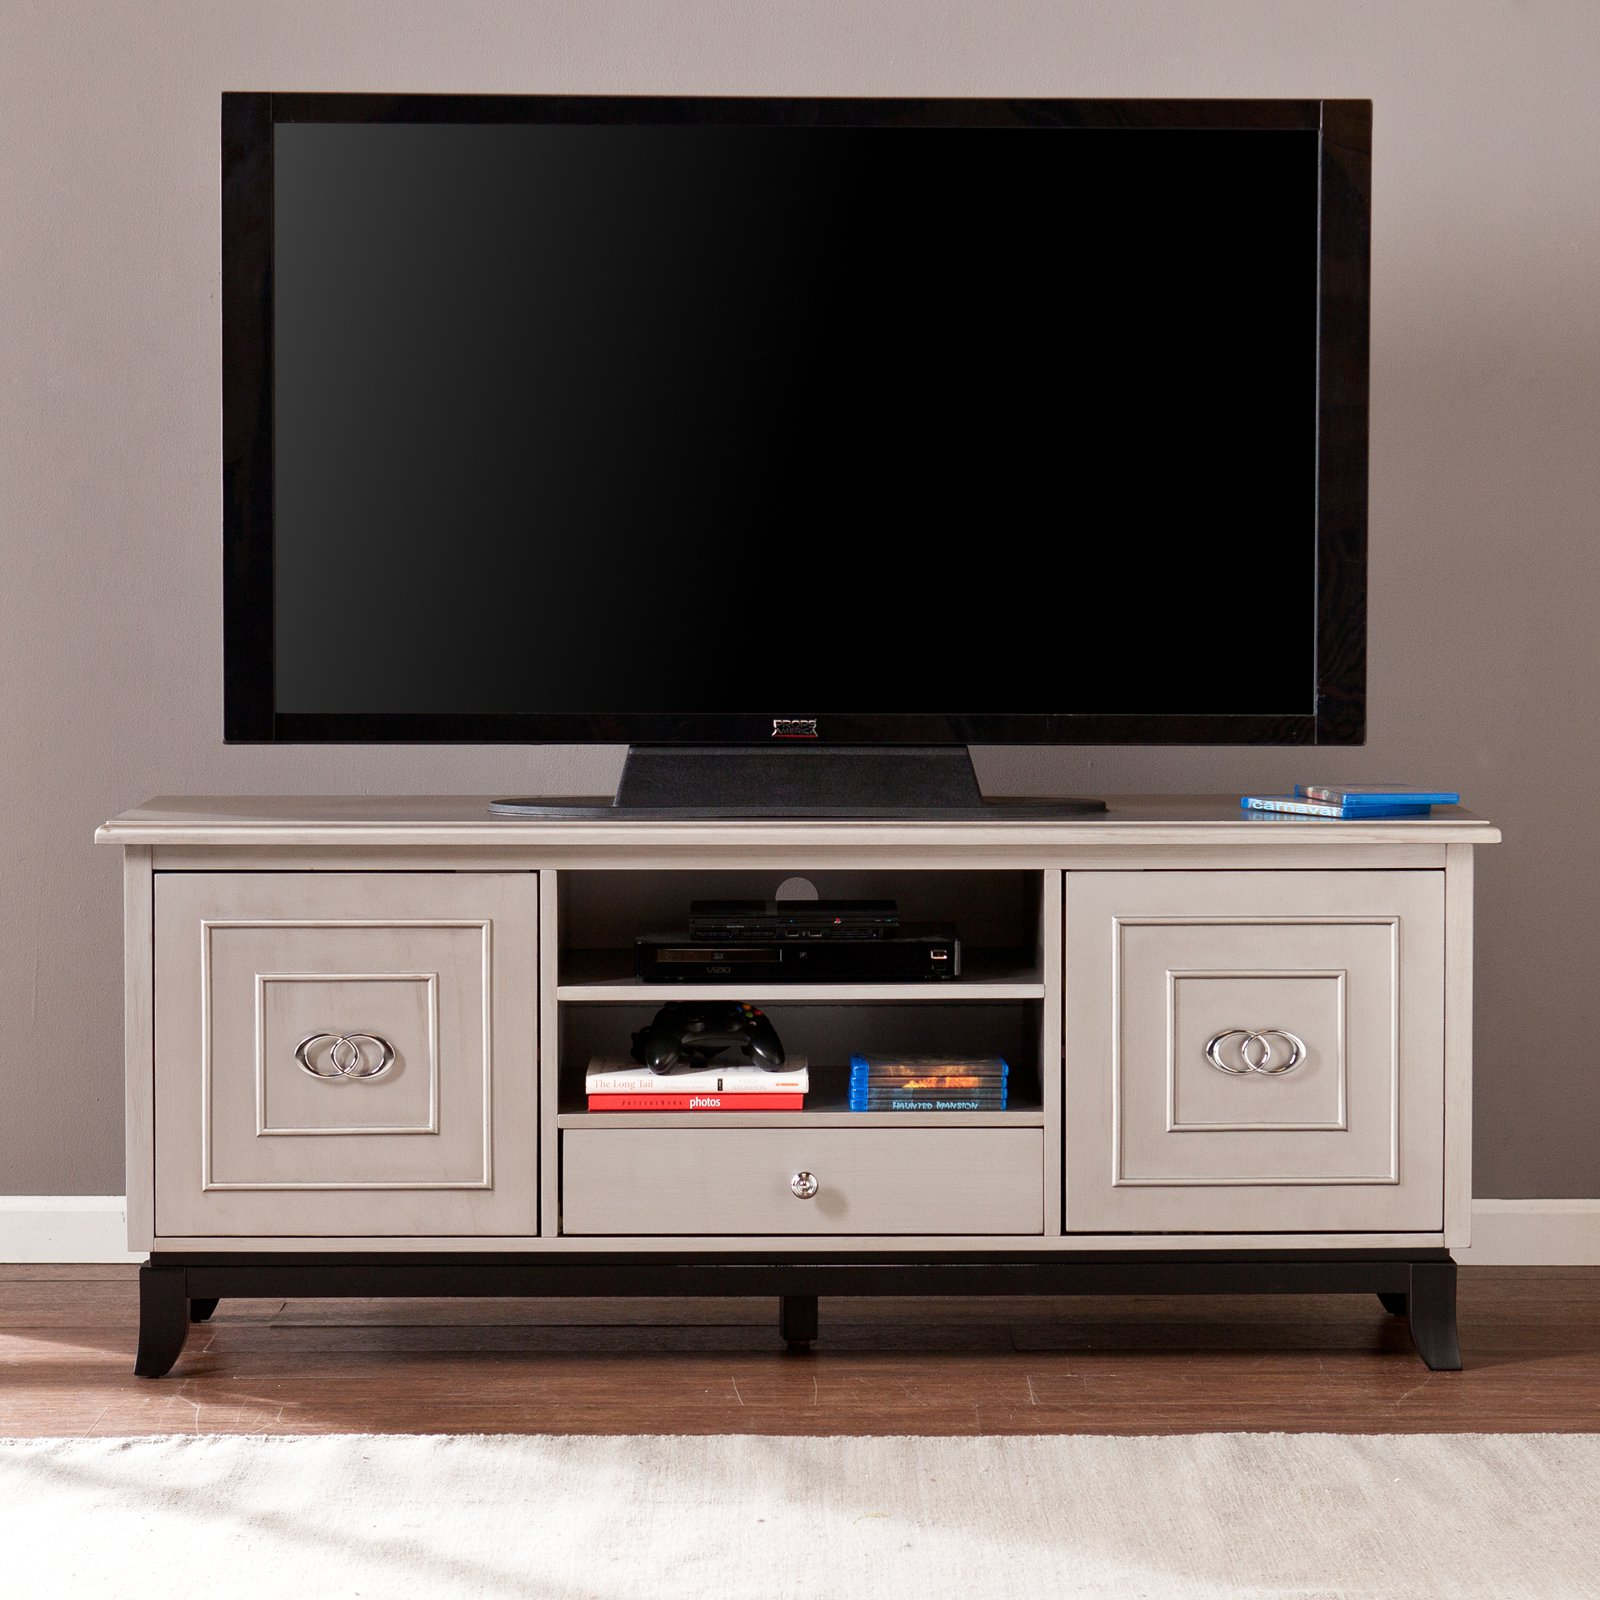 Southern Enterprises Wildon 60 in. TV / Media Stand - Antique Gray